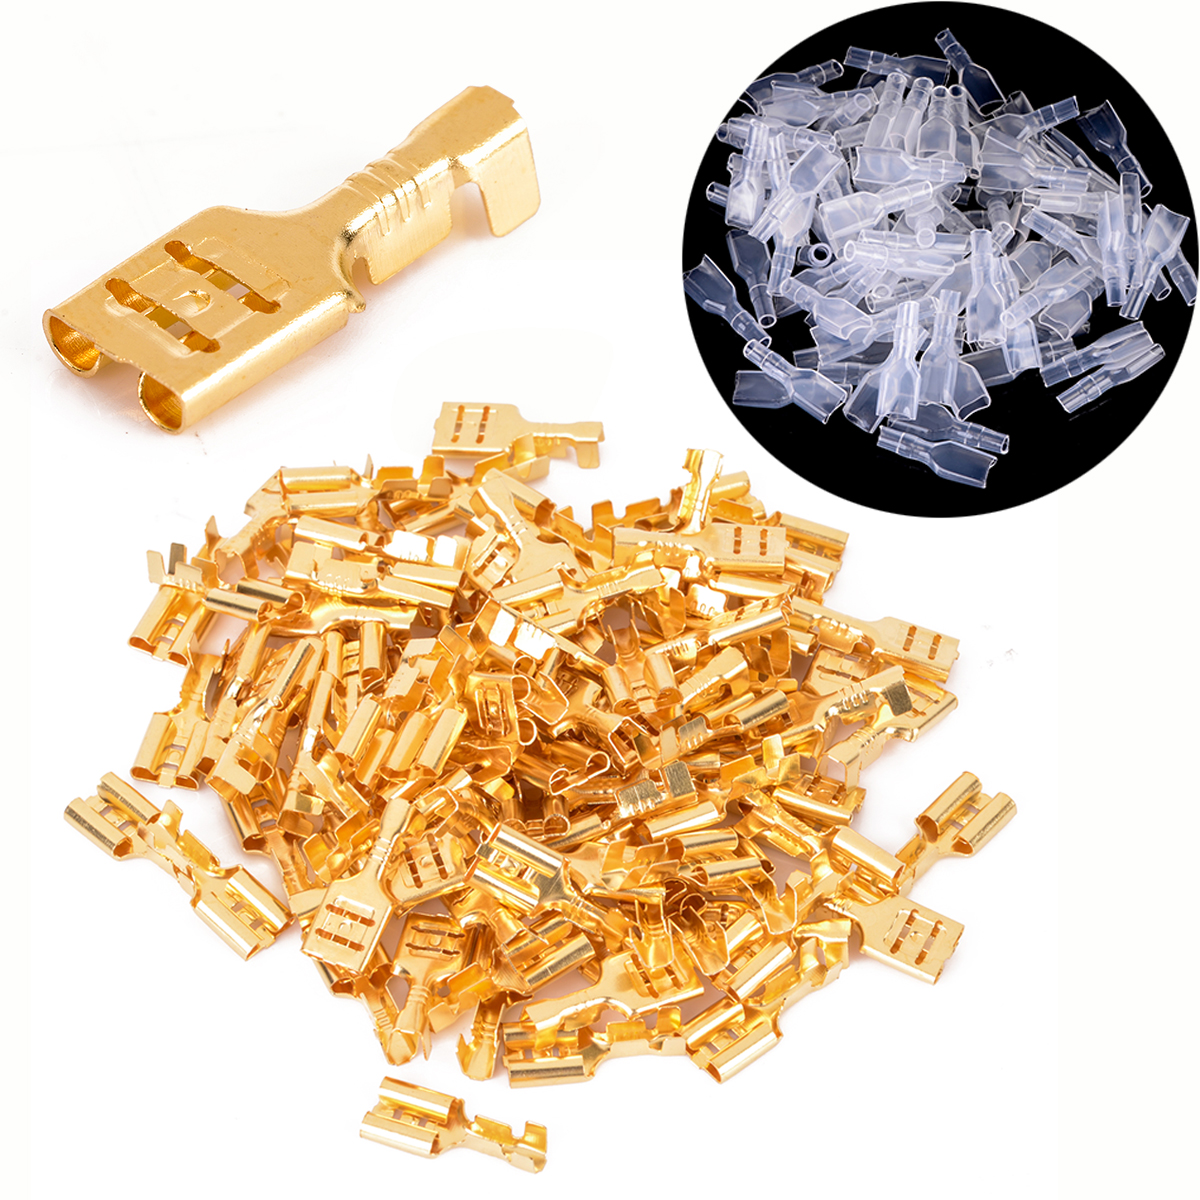 OR 50 24 yellow insulated 5mm bullet crimp connectors great for speakers PACKS OF 24 24 12 OF EACH 25 OF EACH